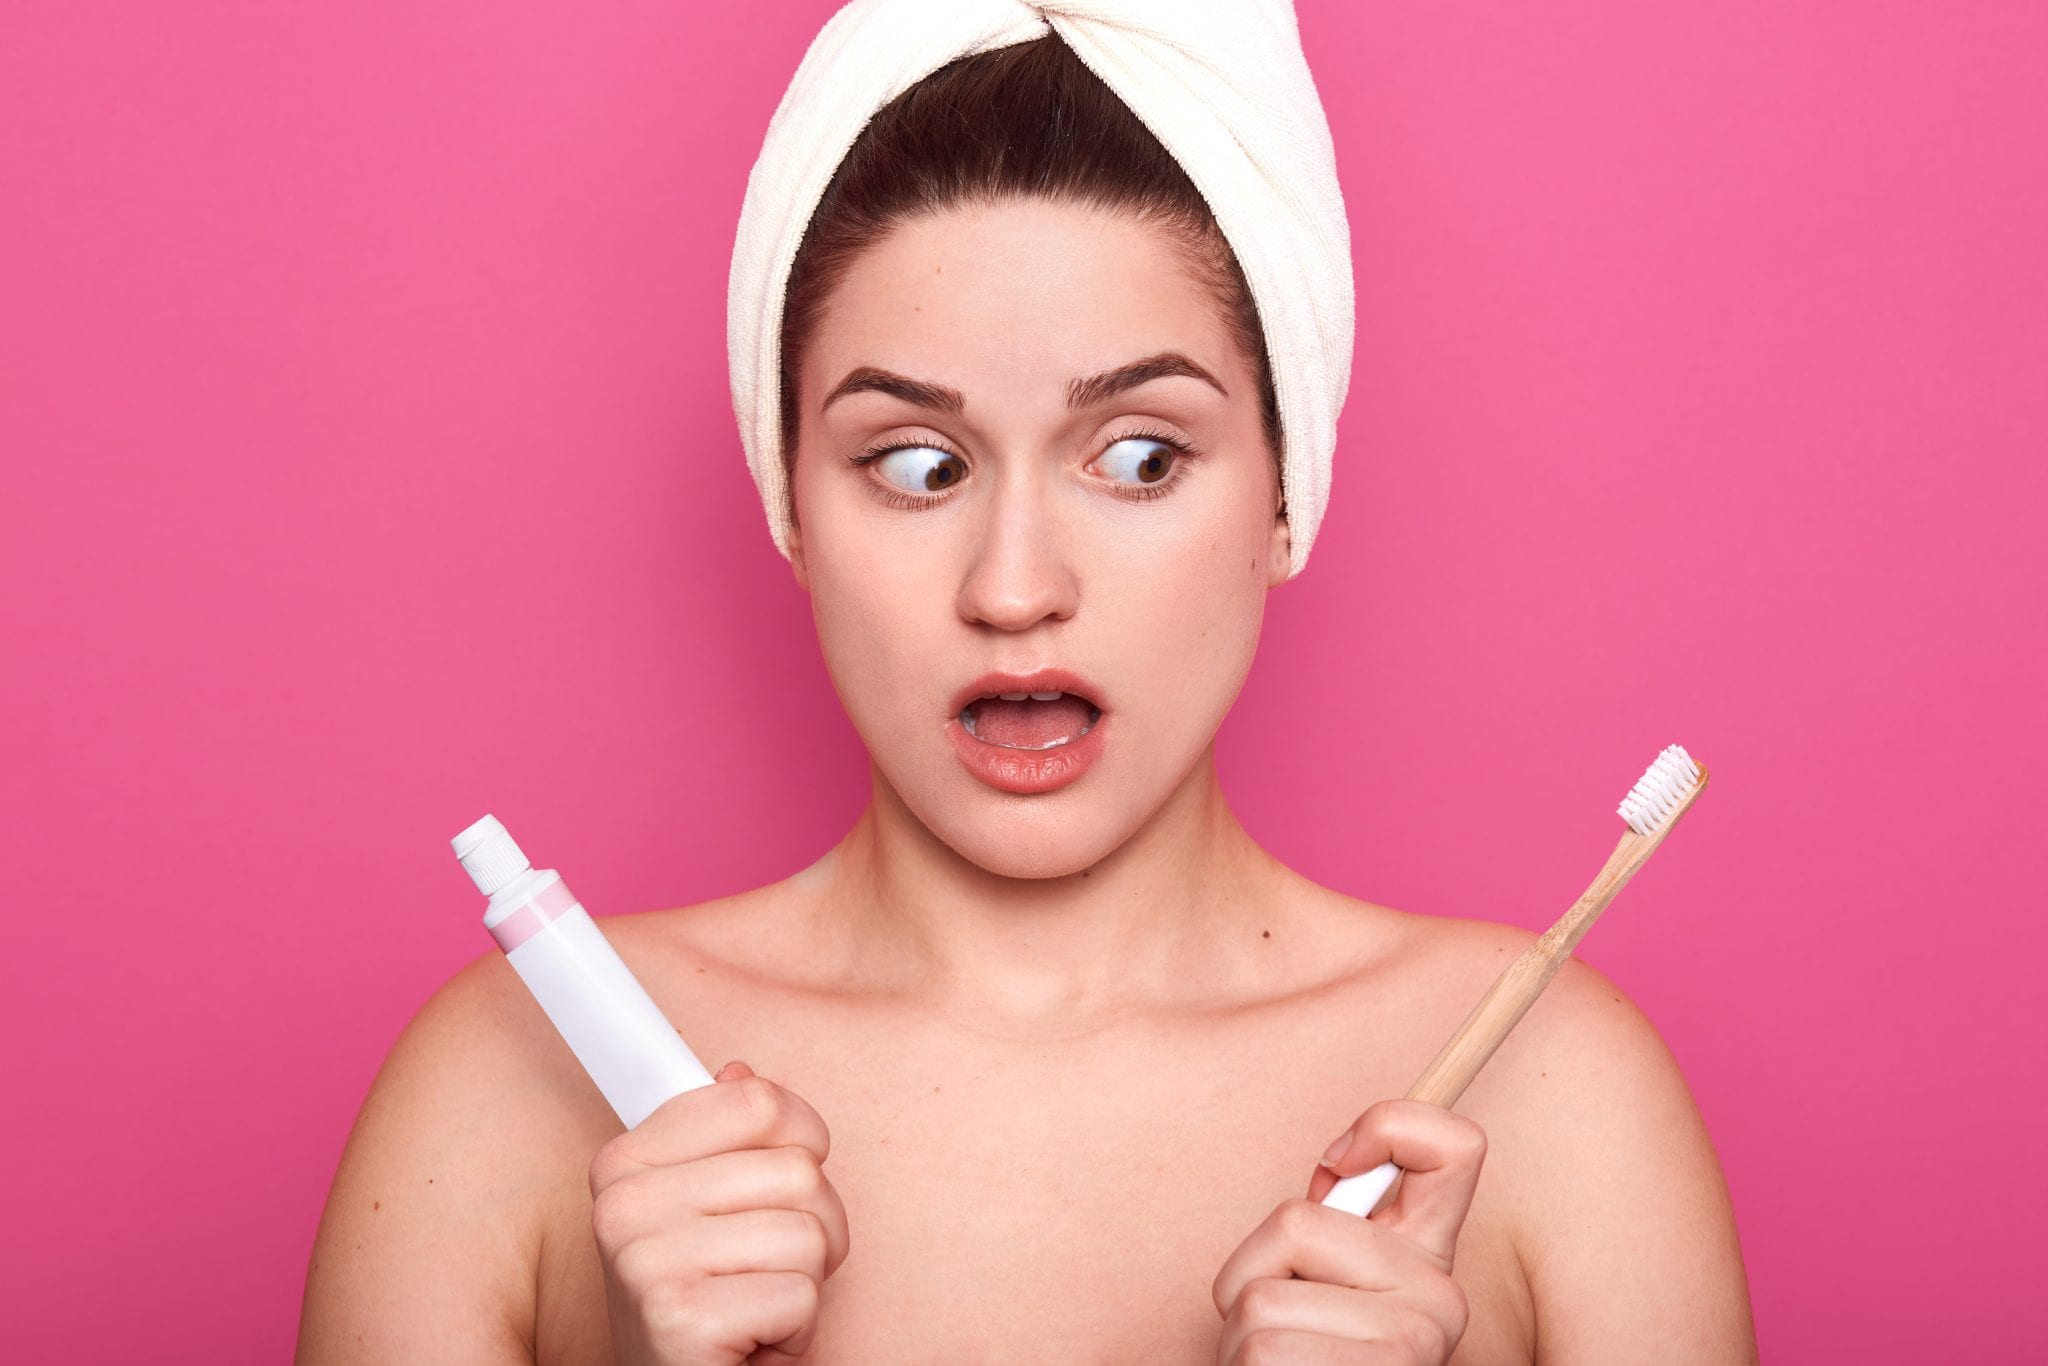 Woman out of the shower surprised with toothbrush and paste